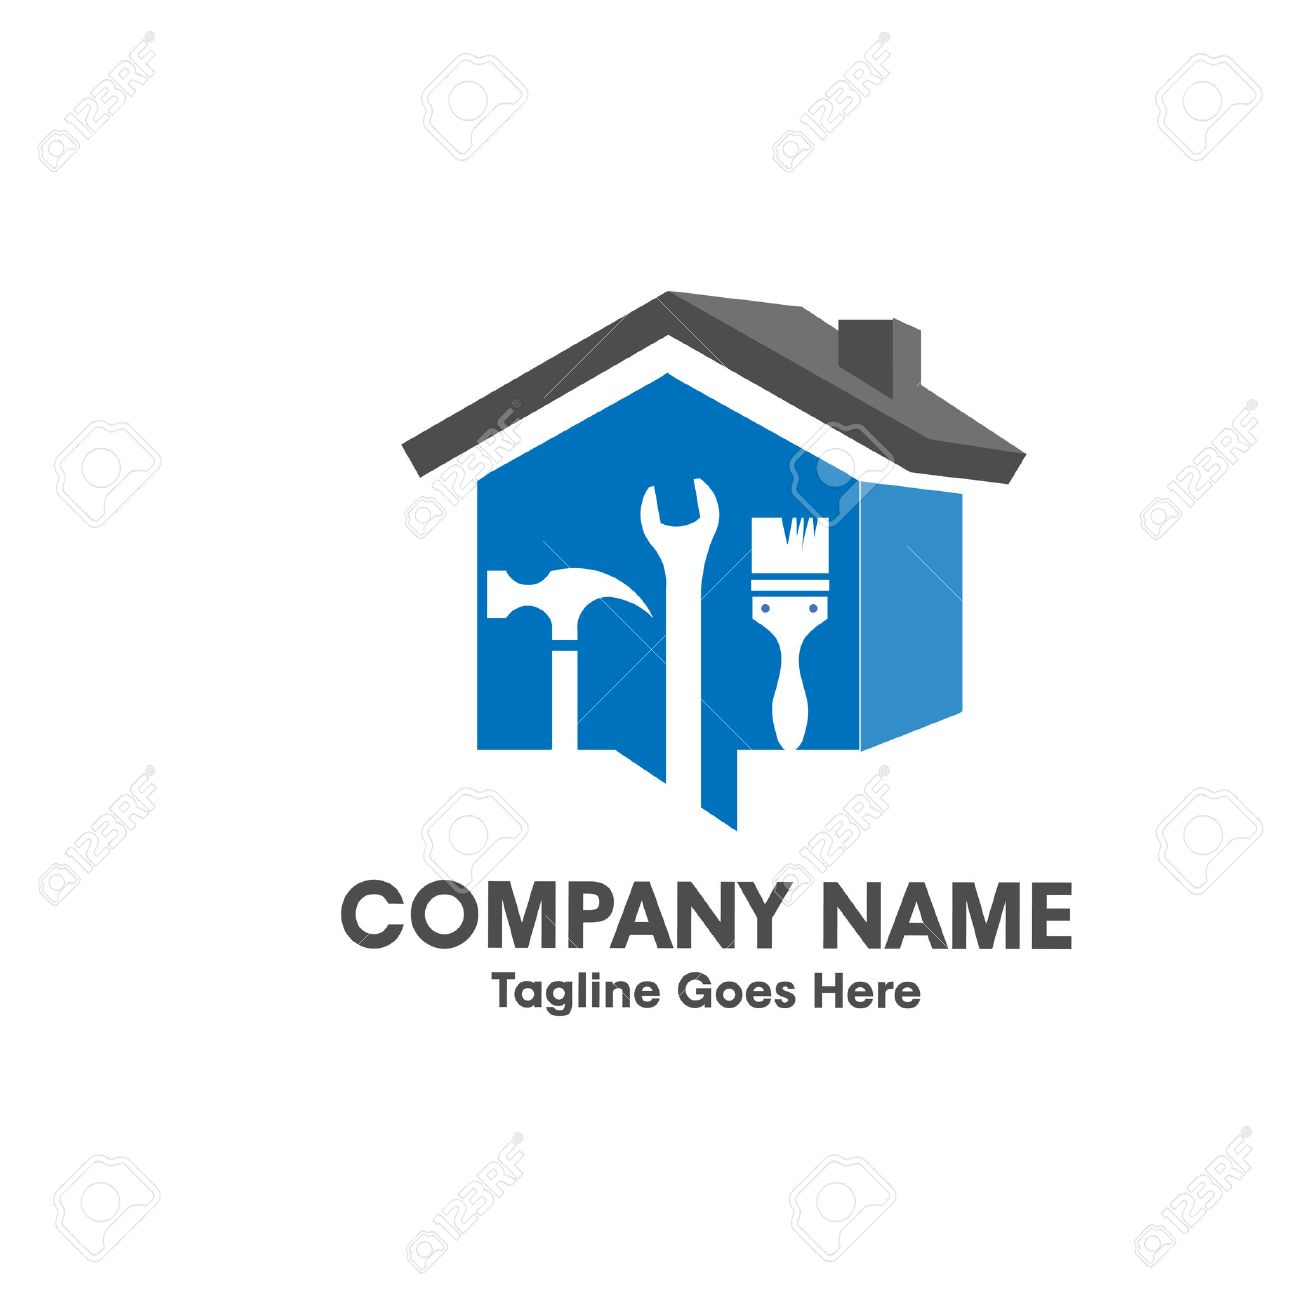 Home repair emblem with tool and symbol of a 3d house logo - 54448735